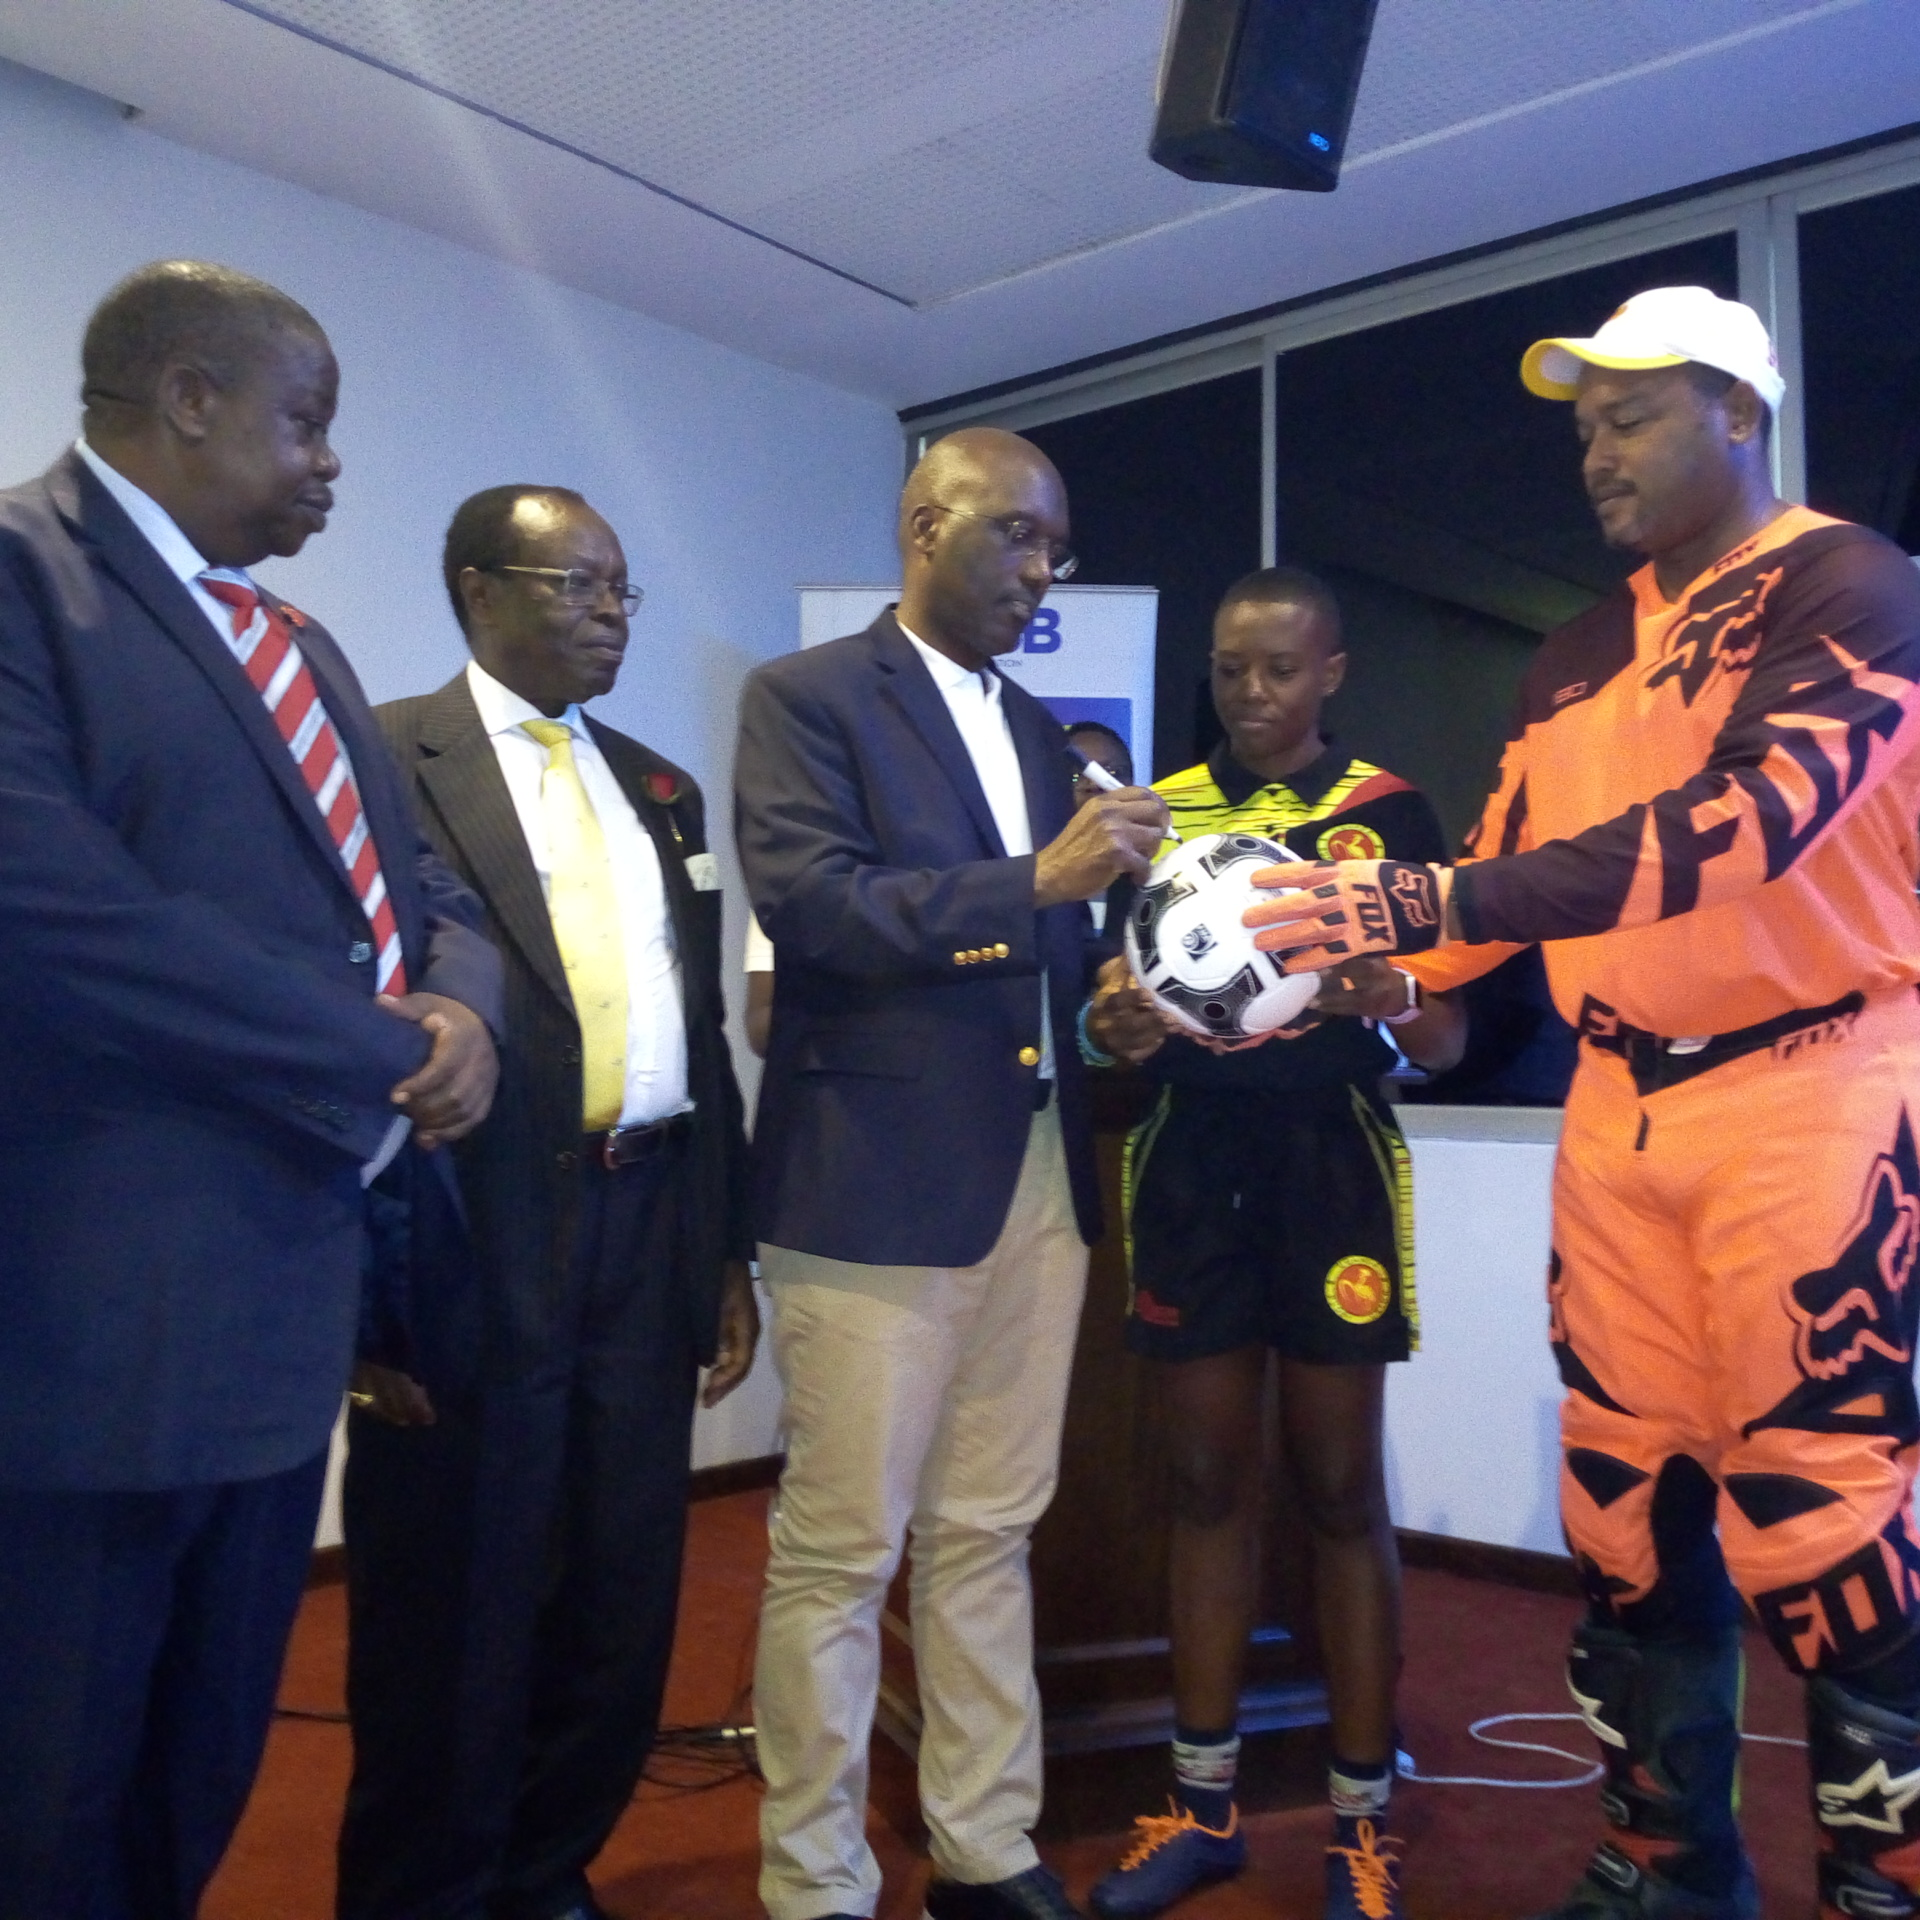 .L - R  Hon Kahinda Otafiire, Minister of Justice & Constituitional Affairs, Ambassador Francis Butagira , Chaiperson URSB , Mr.Bemanya Twebaze, Registrar General,URSB signing on the ball in presence of the Sports Ambassadors of URSB, Charlotte Mudola and Arthur Blick Jnr( Photo/ Abraham MUTALYEBWA)